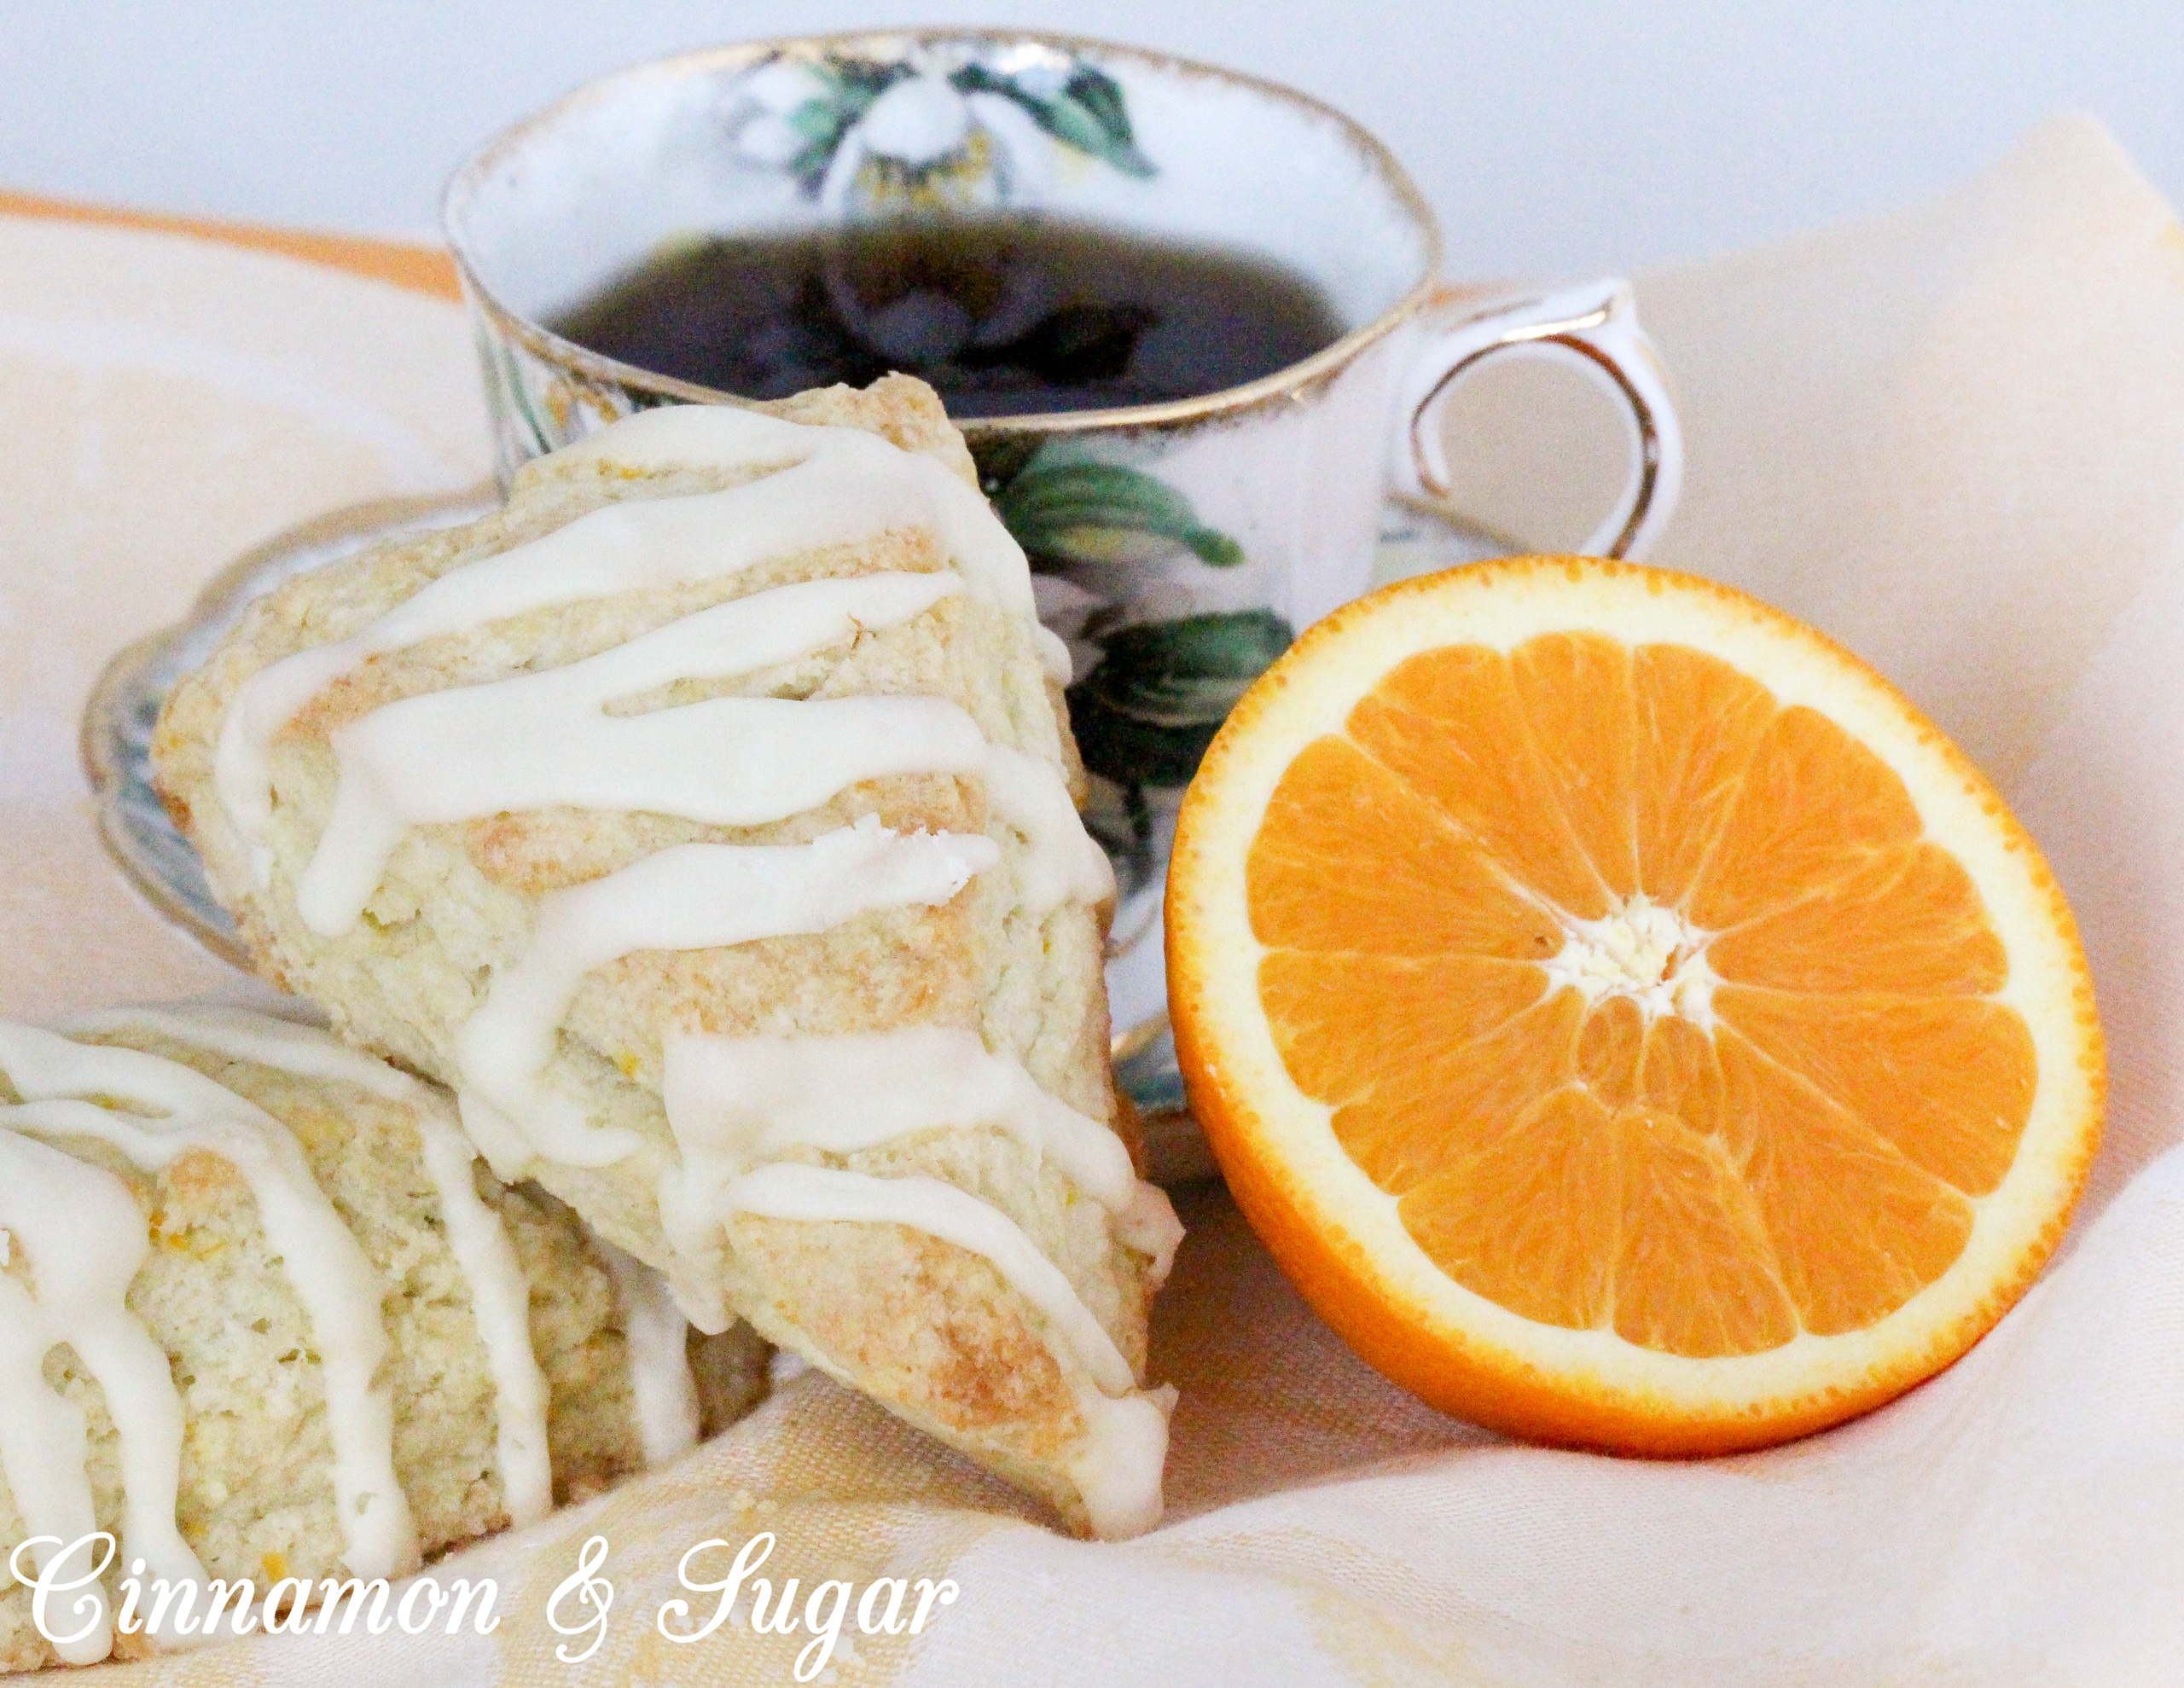 These flaky Orange Scones are easy to mix up and the sweet, orange glaze boosts the wow factor. Scrumptious on their own, a smear of orange marmalade would make them even more delectable! Recipe shared with permission granted by Maddie Day, author of NACHO AVERAGE MURDER.